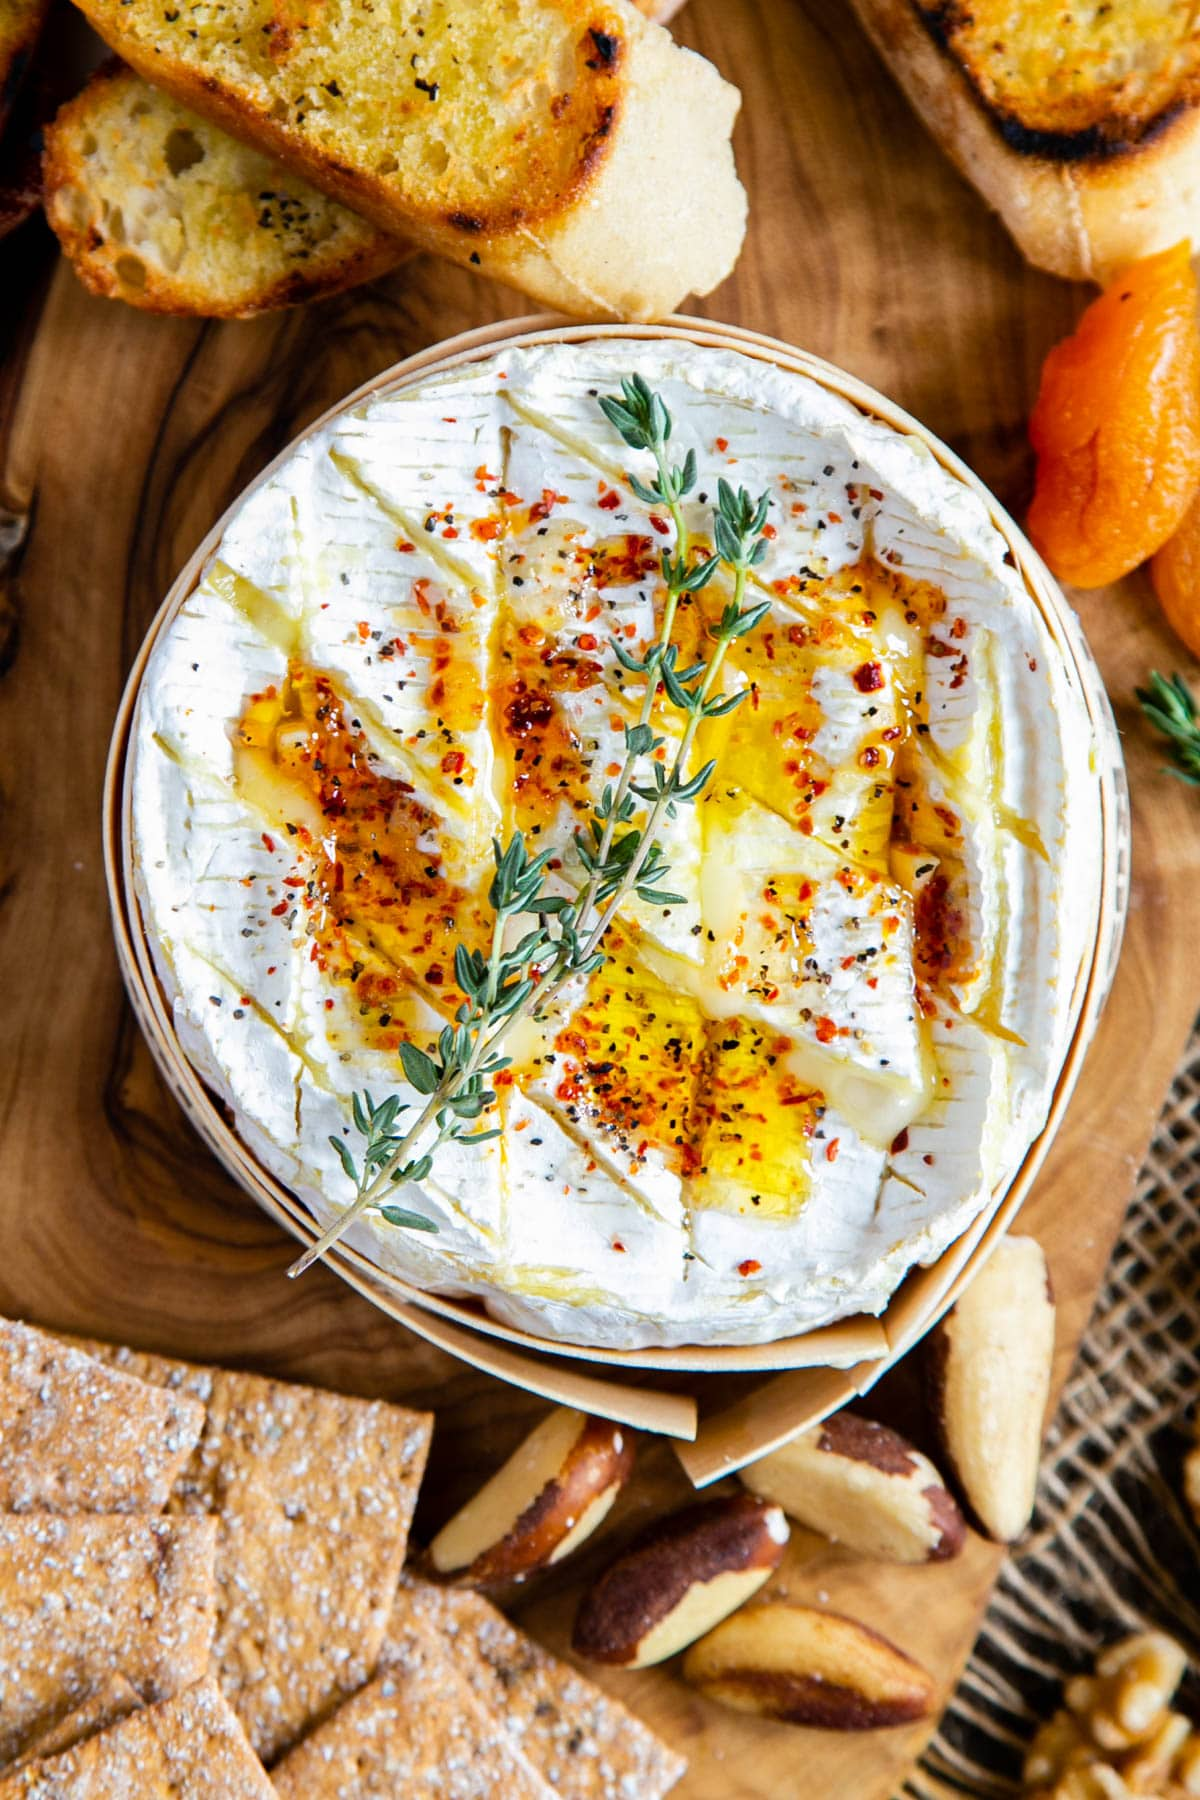 Camembert ready for eating, with suitable accompanyments such as toasted baguette, nuts, crackers and dried apricots.